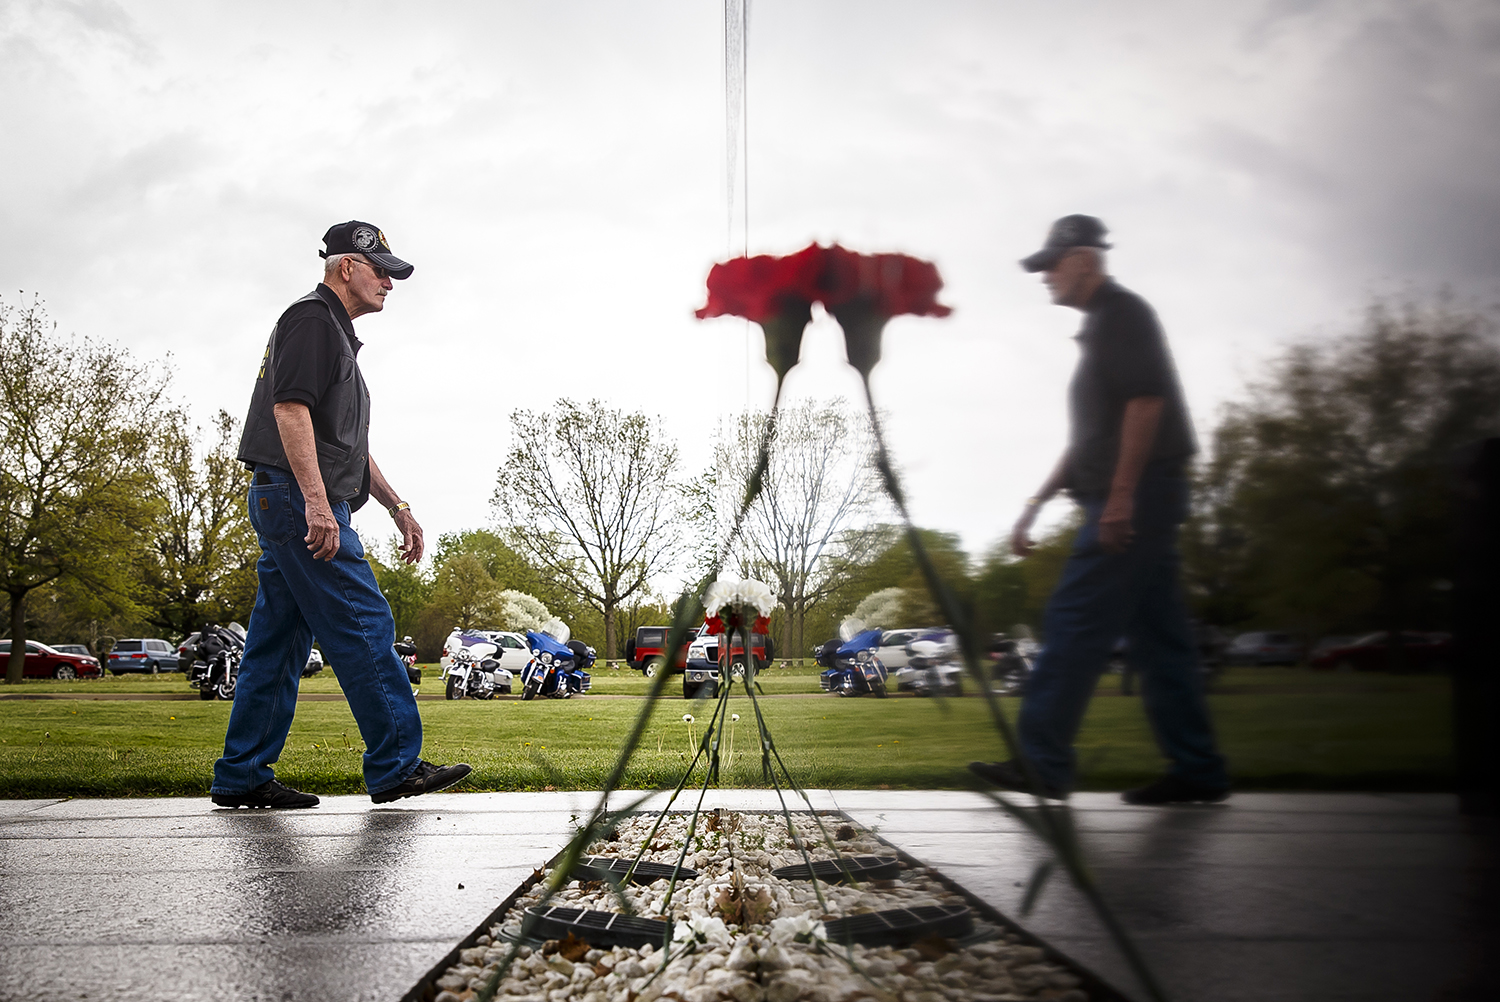 Tom Burcham, of Mattoon, Ill., a Vietnam Veteran with the Marine Corps, walks past one of the five granite walls, each representing a branch of the military and contain the names of the 2,938 Illinois servicemen who died in the Vietnam War, at the Illinois Vietnam Veterans Memorial during the 30th annual Illinois Vietnam Veterans Vigil in Oak Ridge Cemetery, Sunday, May 6, 2018, in Springfield, Ill. The 24-hour vigil is done by individuals from organizations from across the state and are done in one hour increments and broken up into 15 minute segments so as many people that want to can have the opportunity to walk the vigil. [Justin L. Fowler/The State Journal-Register]